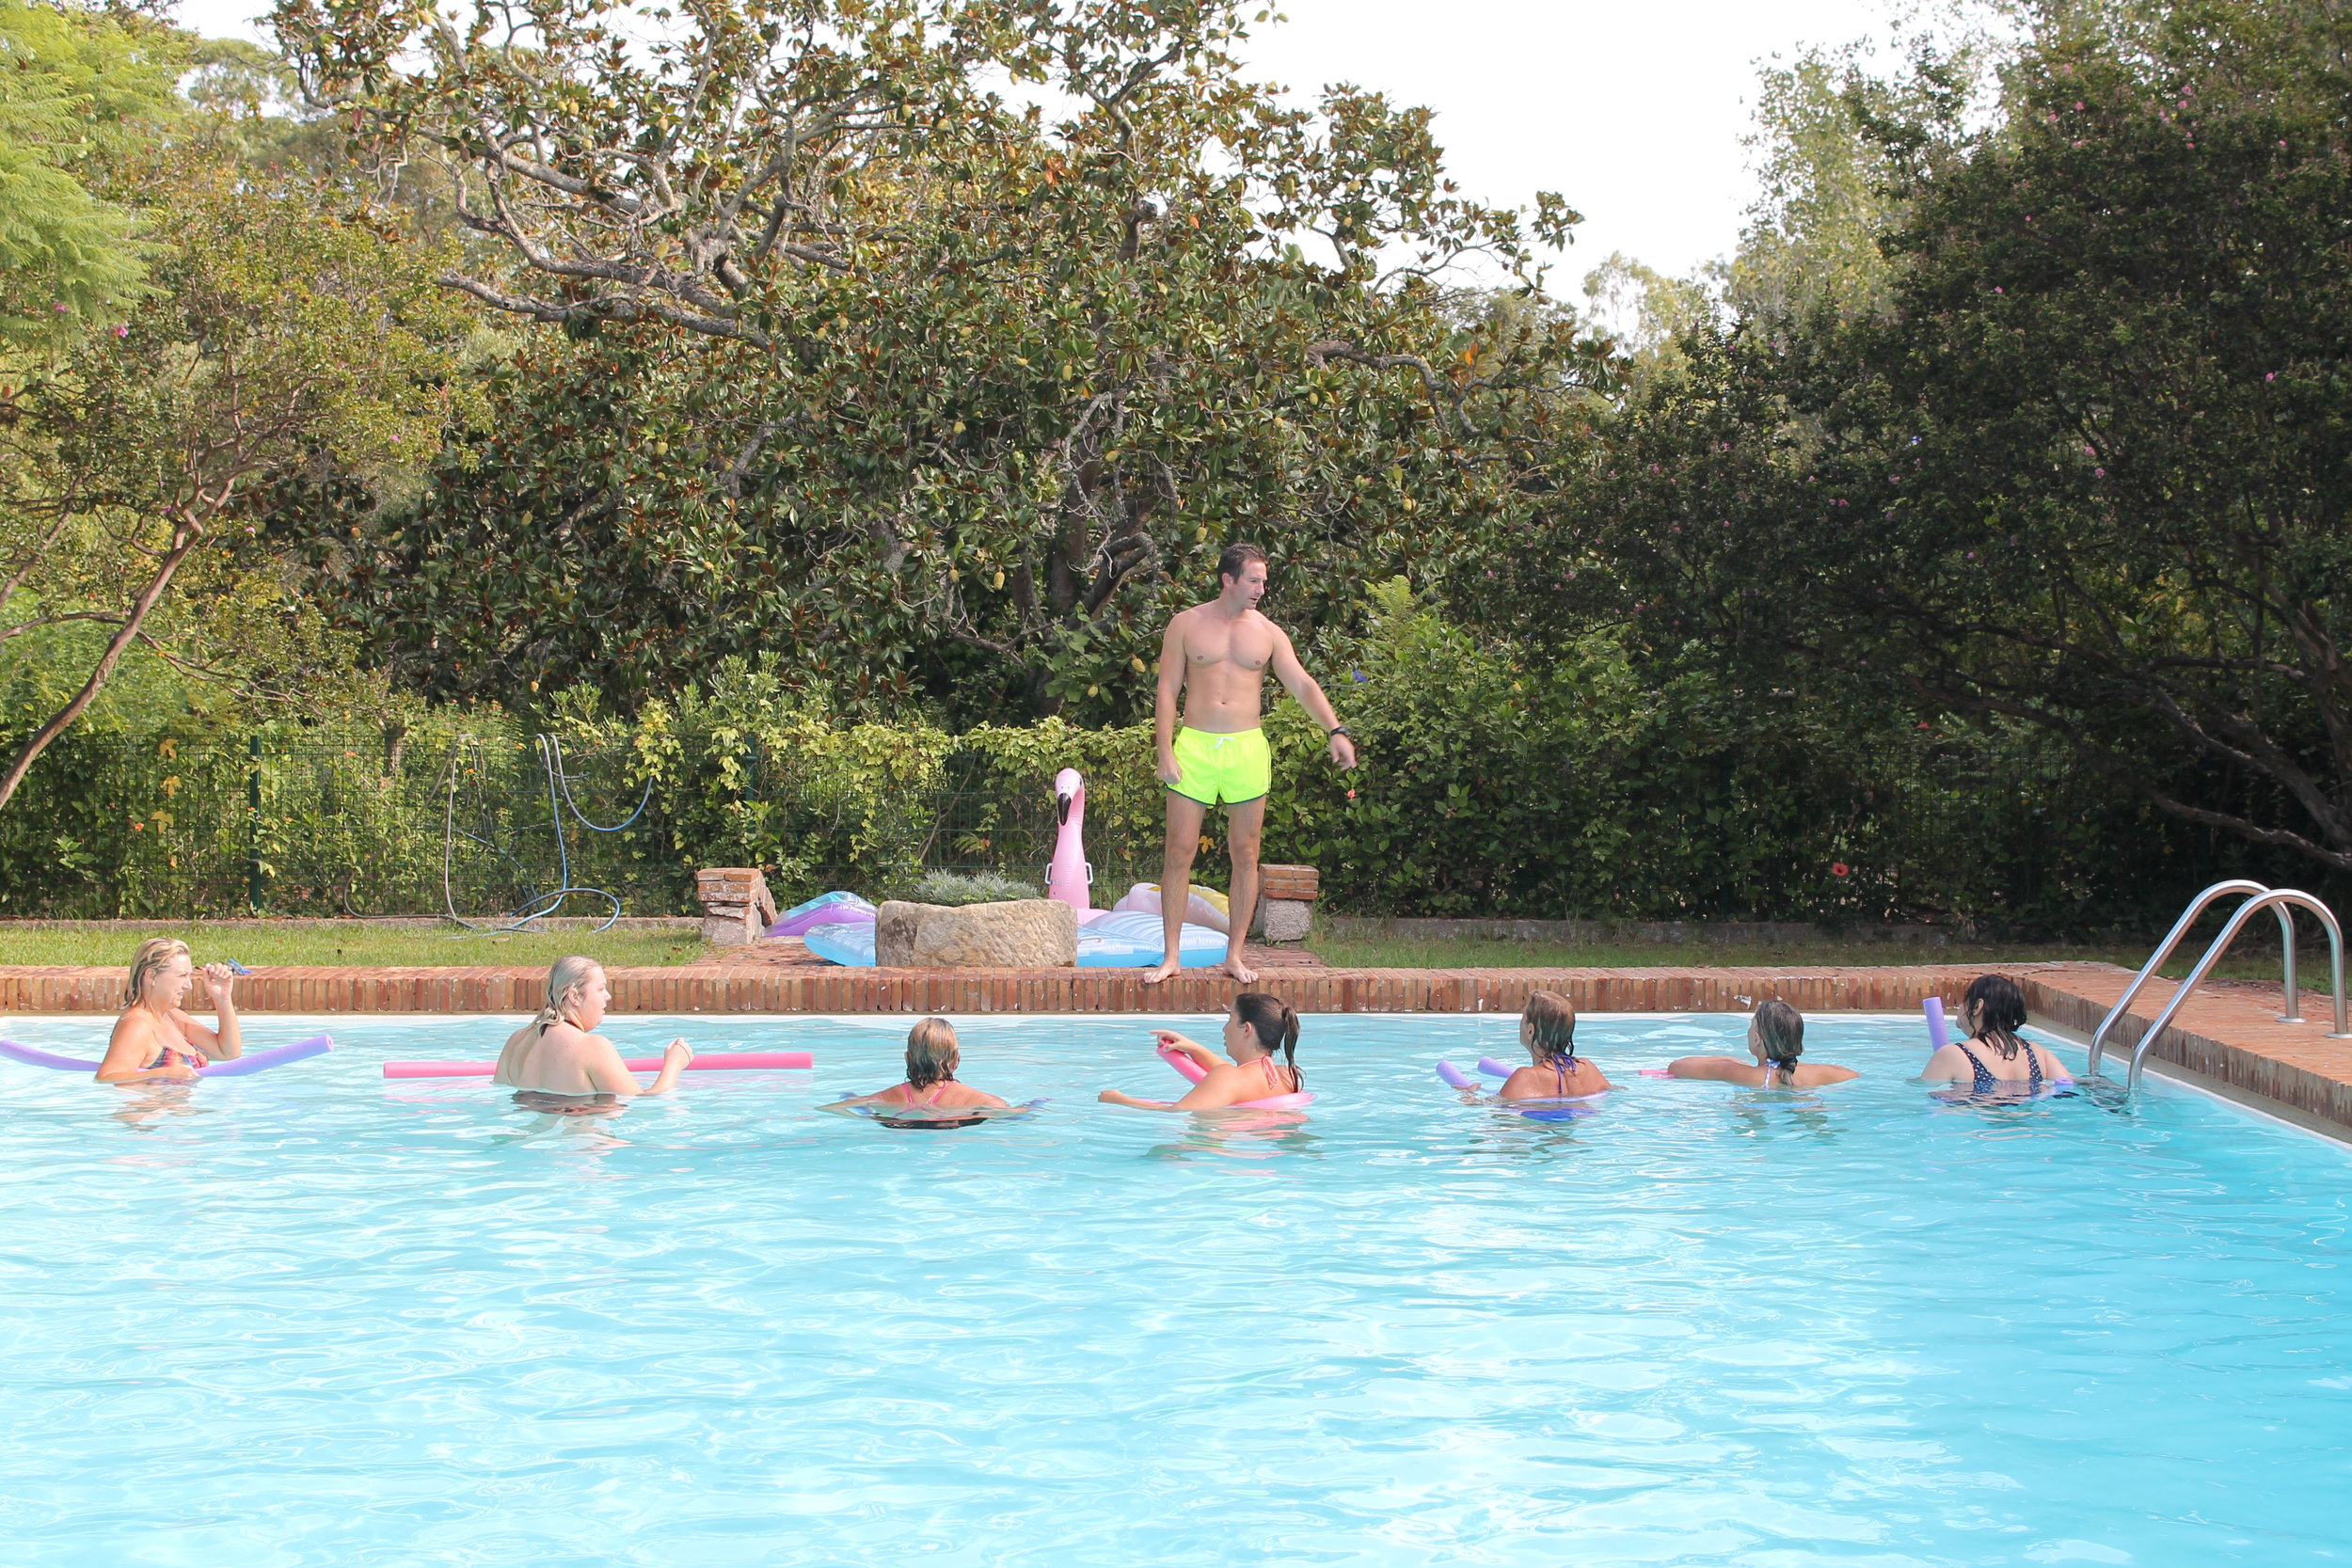 Aquarobics and pool games make the fitness retreat fun and interesting